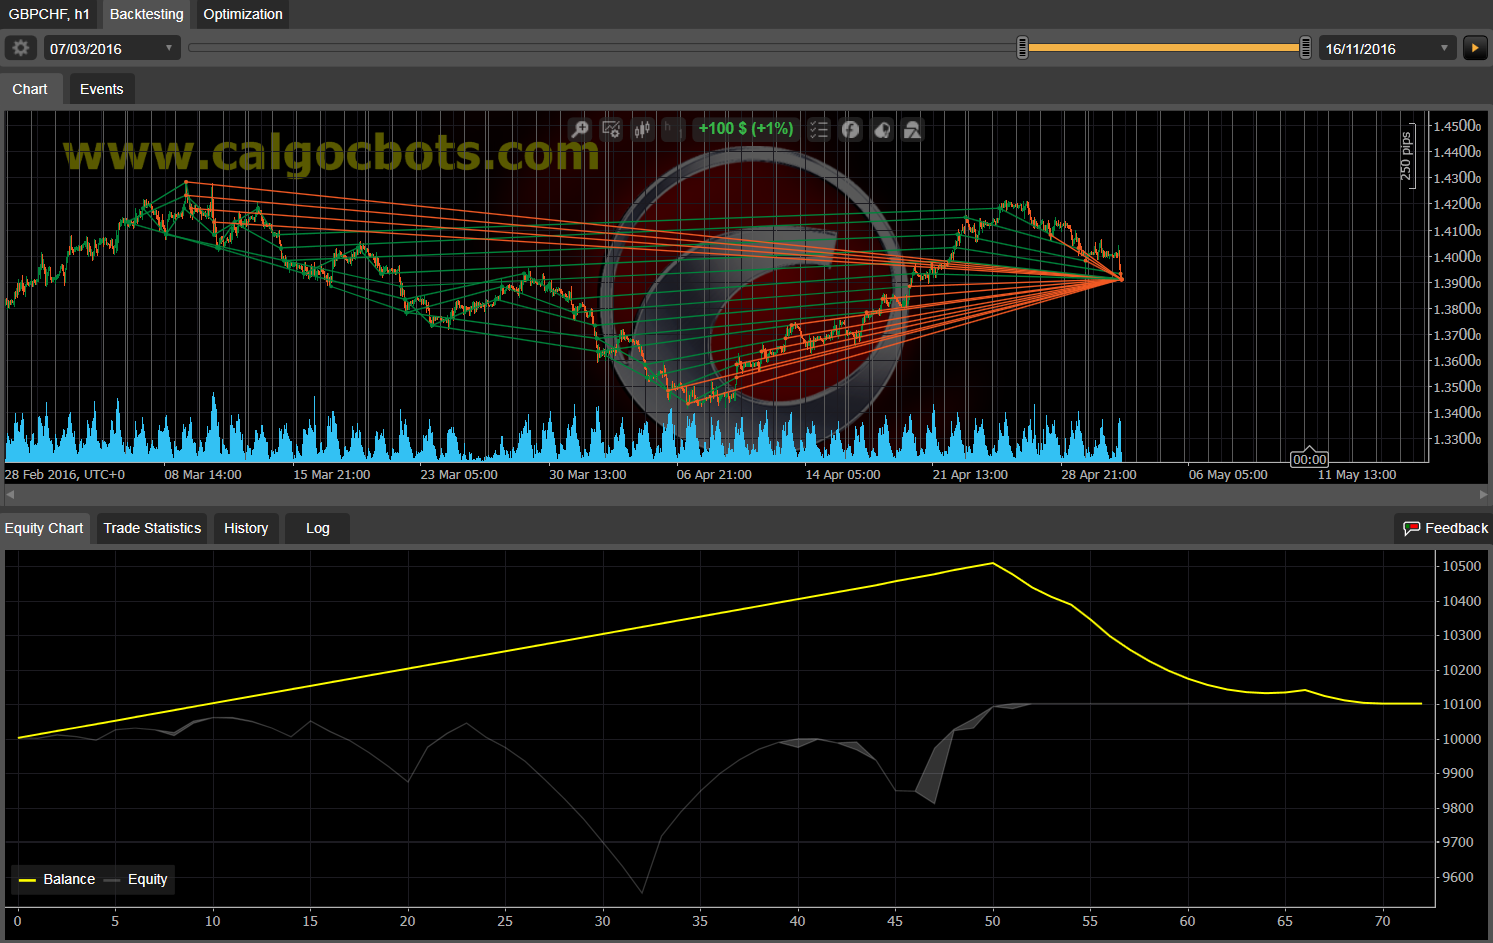 Dual Grid Hedge GBP CHF 1h cAlgo cBots cTrader 100 50 100 - 08